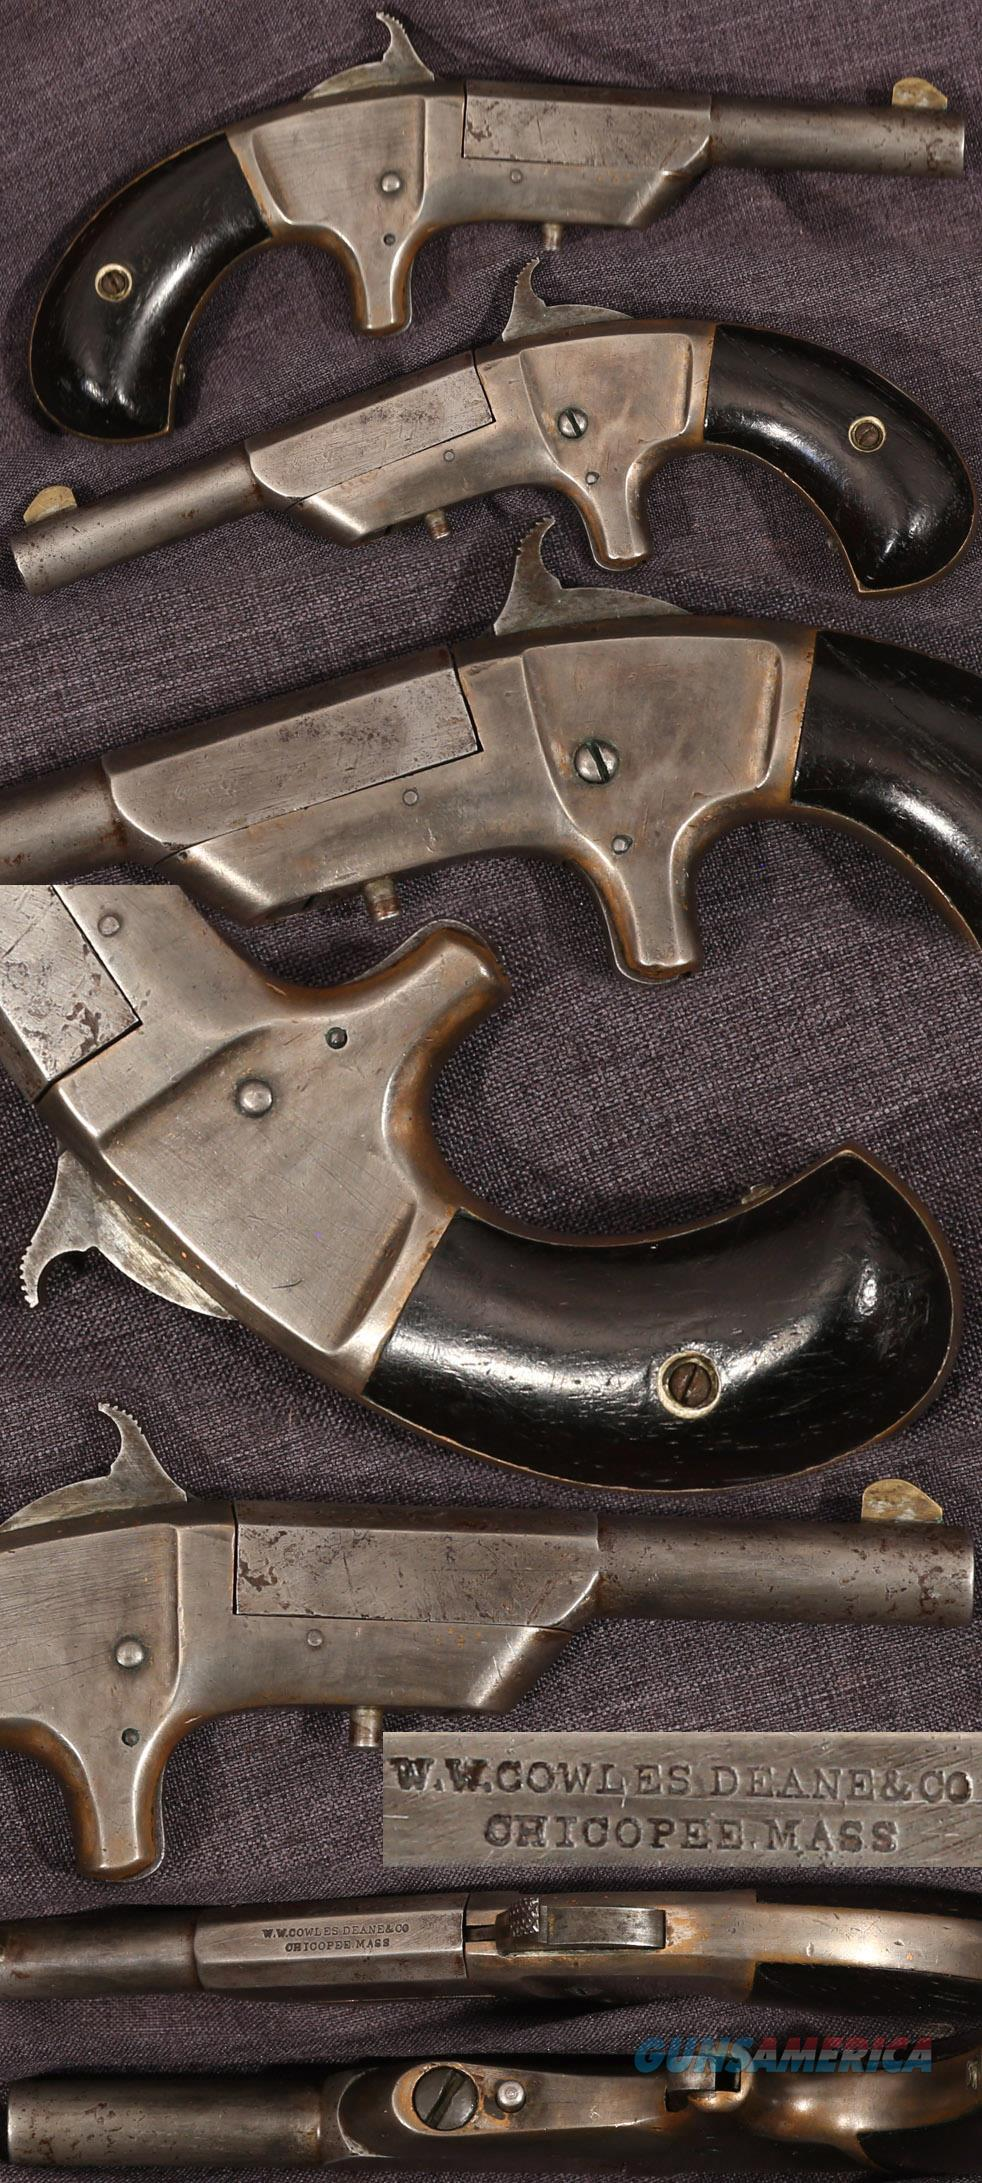 W.W.COWLES DEANE & CO marked 22 caliber derringer  Guns > Pistols > Antique (Pre-1899) Pistols - Ctg. Misc.